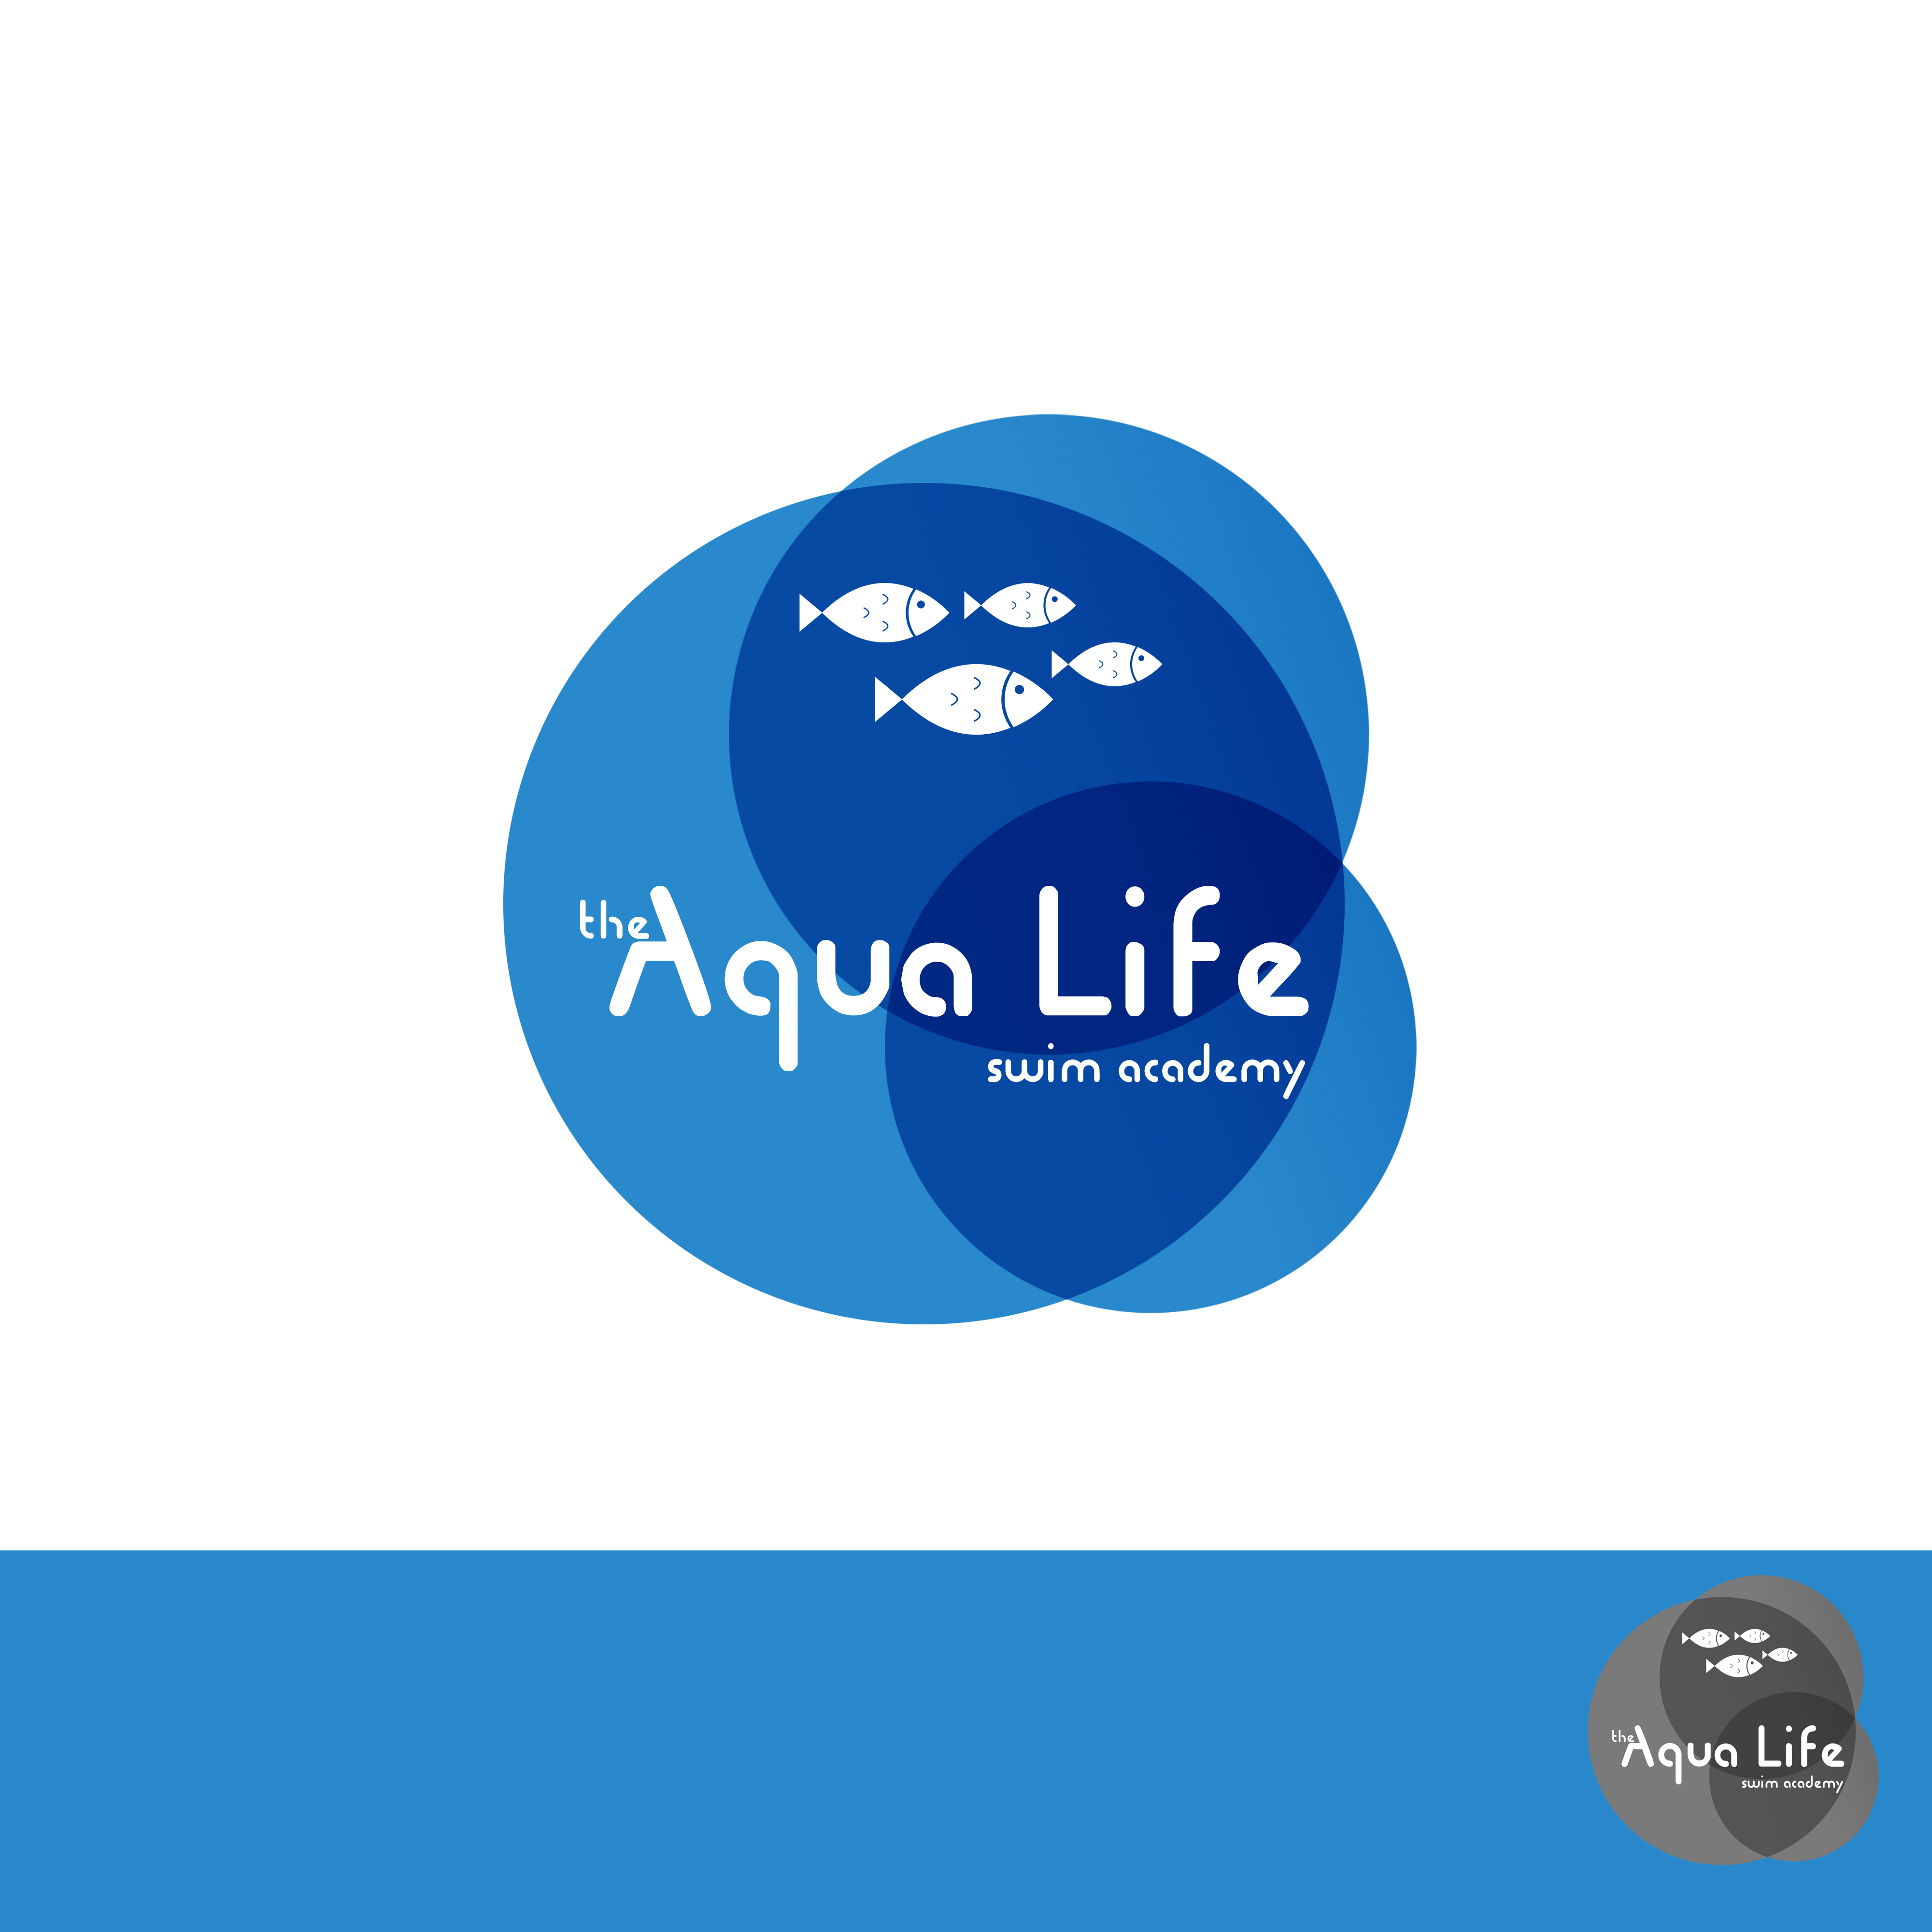 Logo Design by Utkarsh Bhandari - Entry No. 115 in the Logo Design Contest Artistic Logo Design Wanted for The Aqua Life Swim Academy.